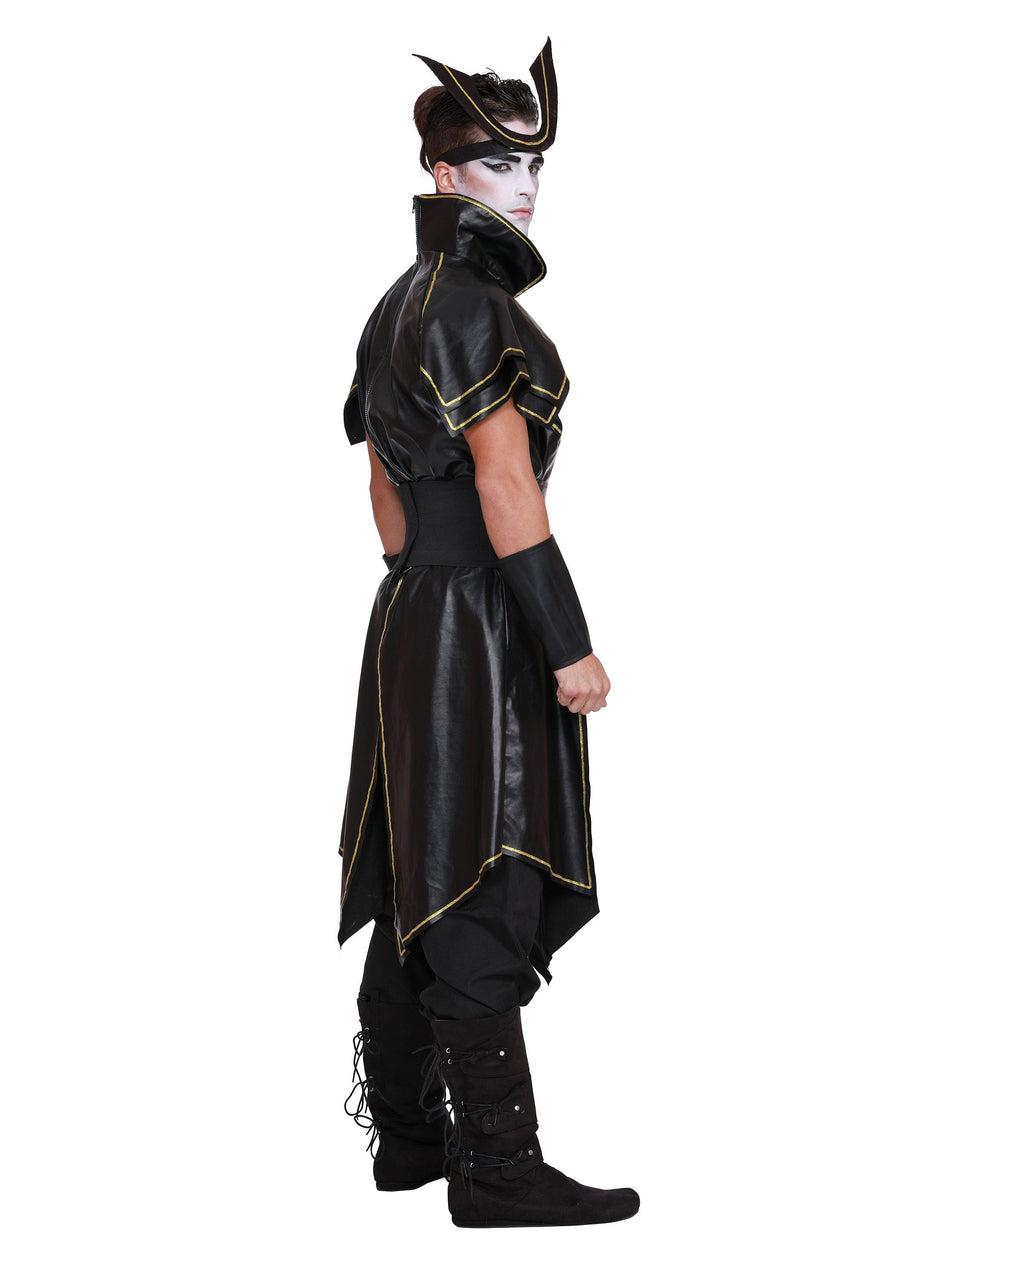 Men's Samurai Men's Costume Dreamgirl Costume